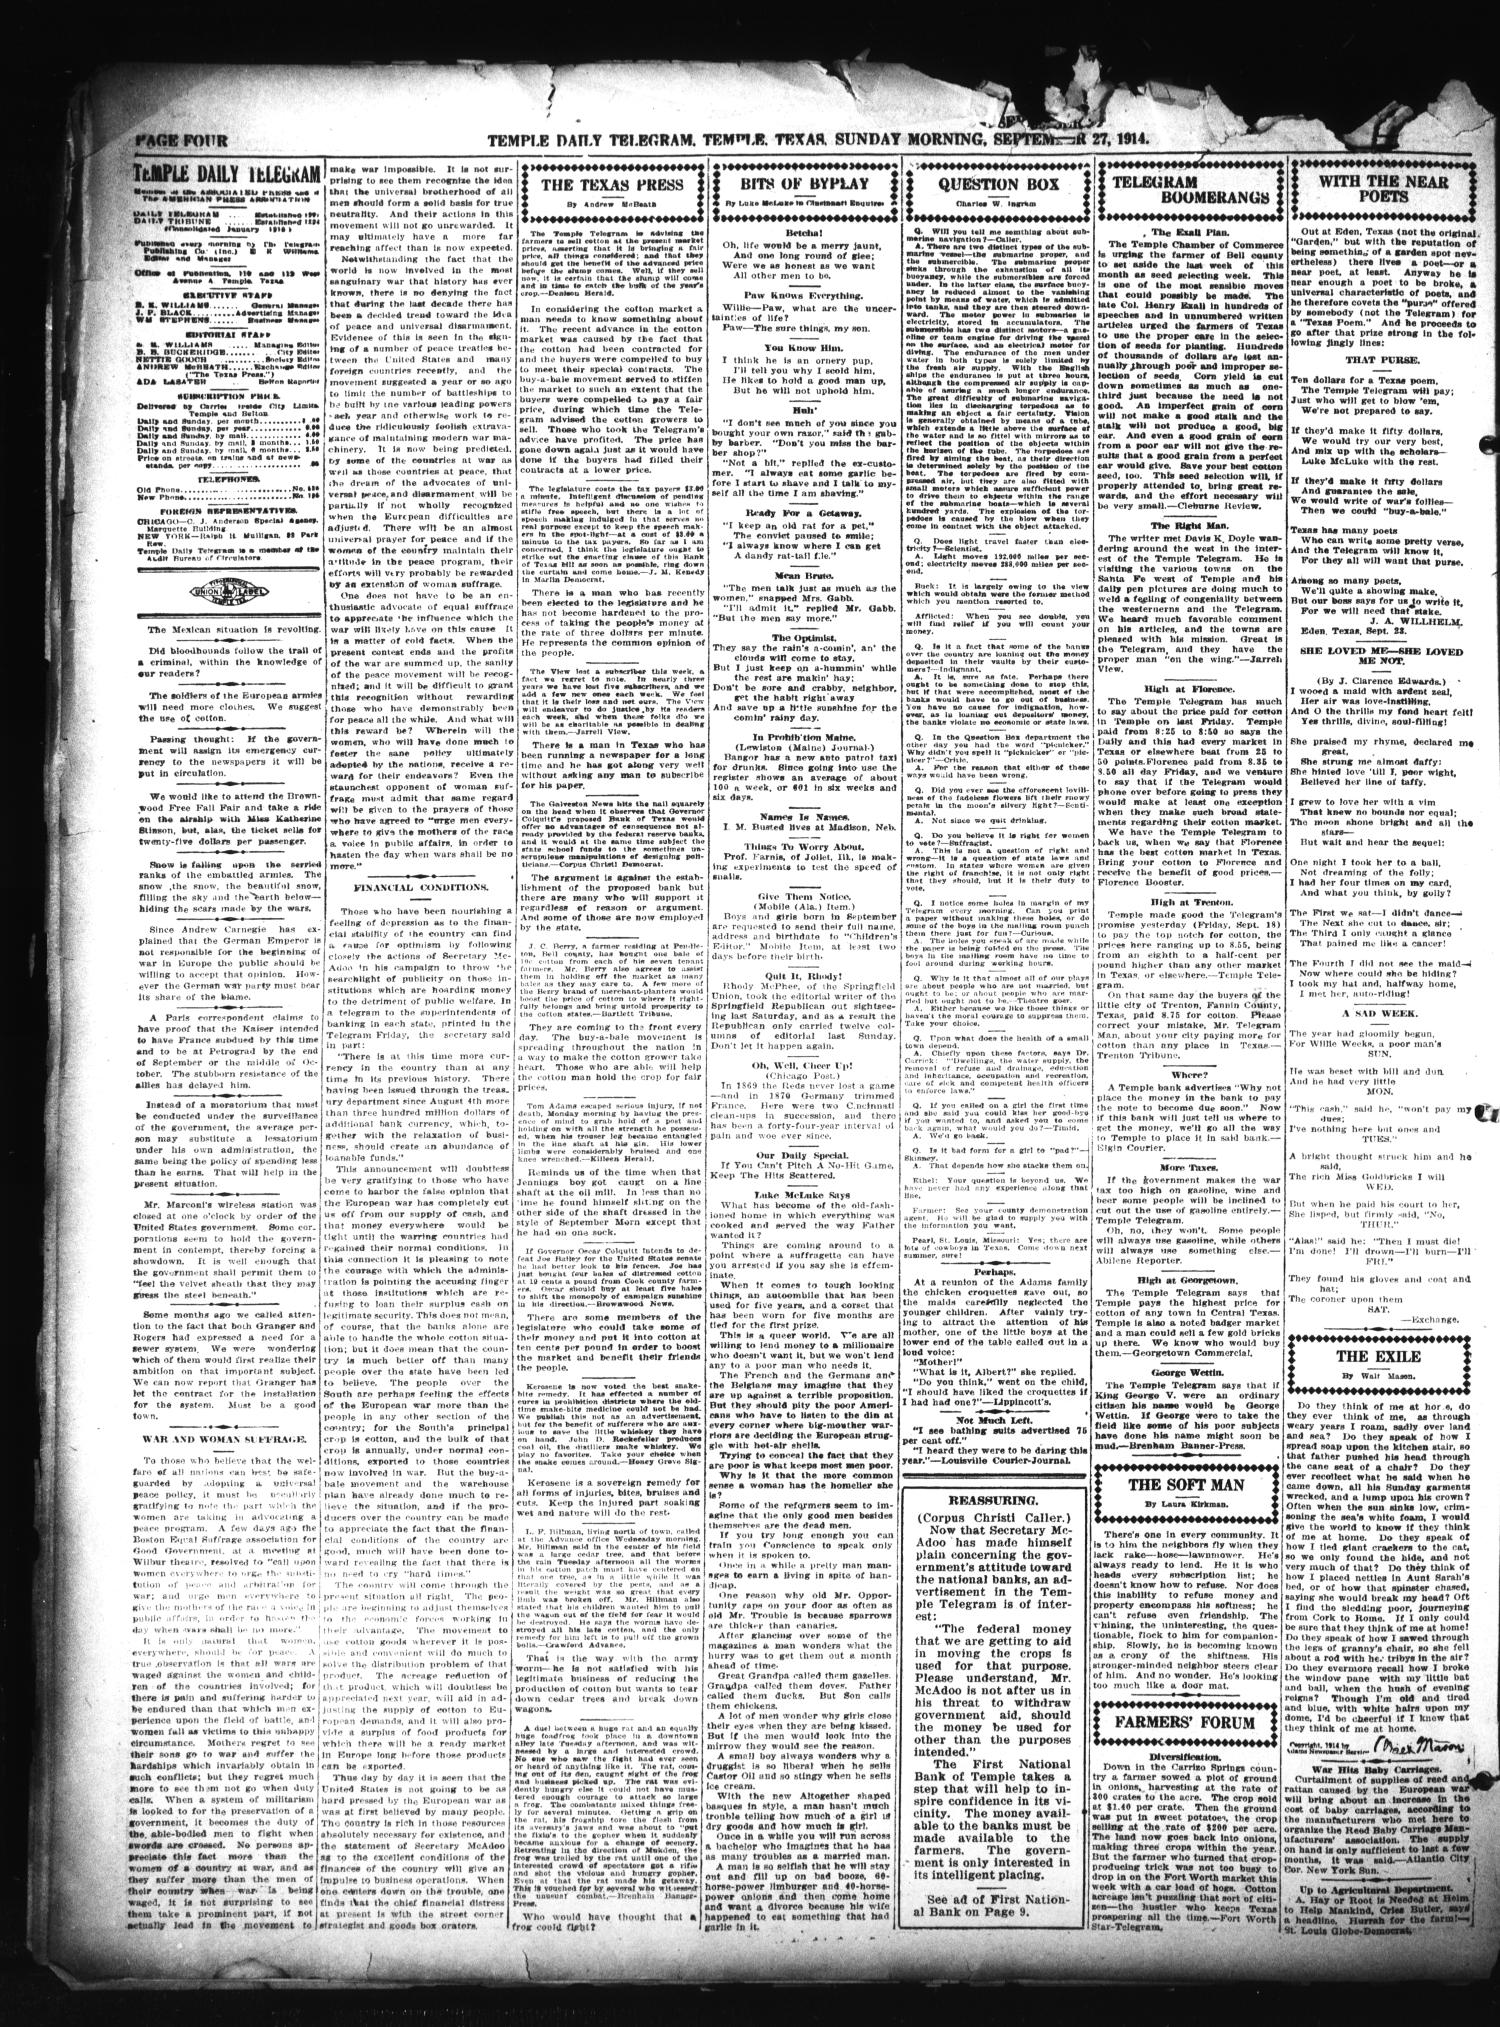 Temple Daily Telegram (Temple, Tex.), Vol. 7, No. 311, Ed. 1 Sunday, September 27, 1914                                                                                                      [Sequence #]: 4 of 12